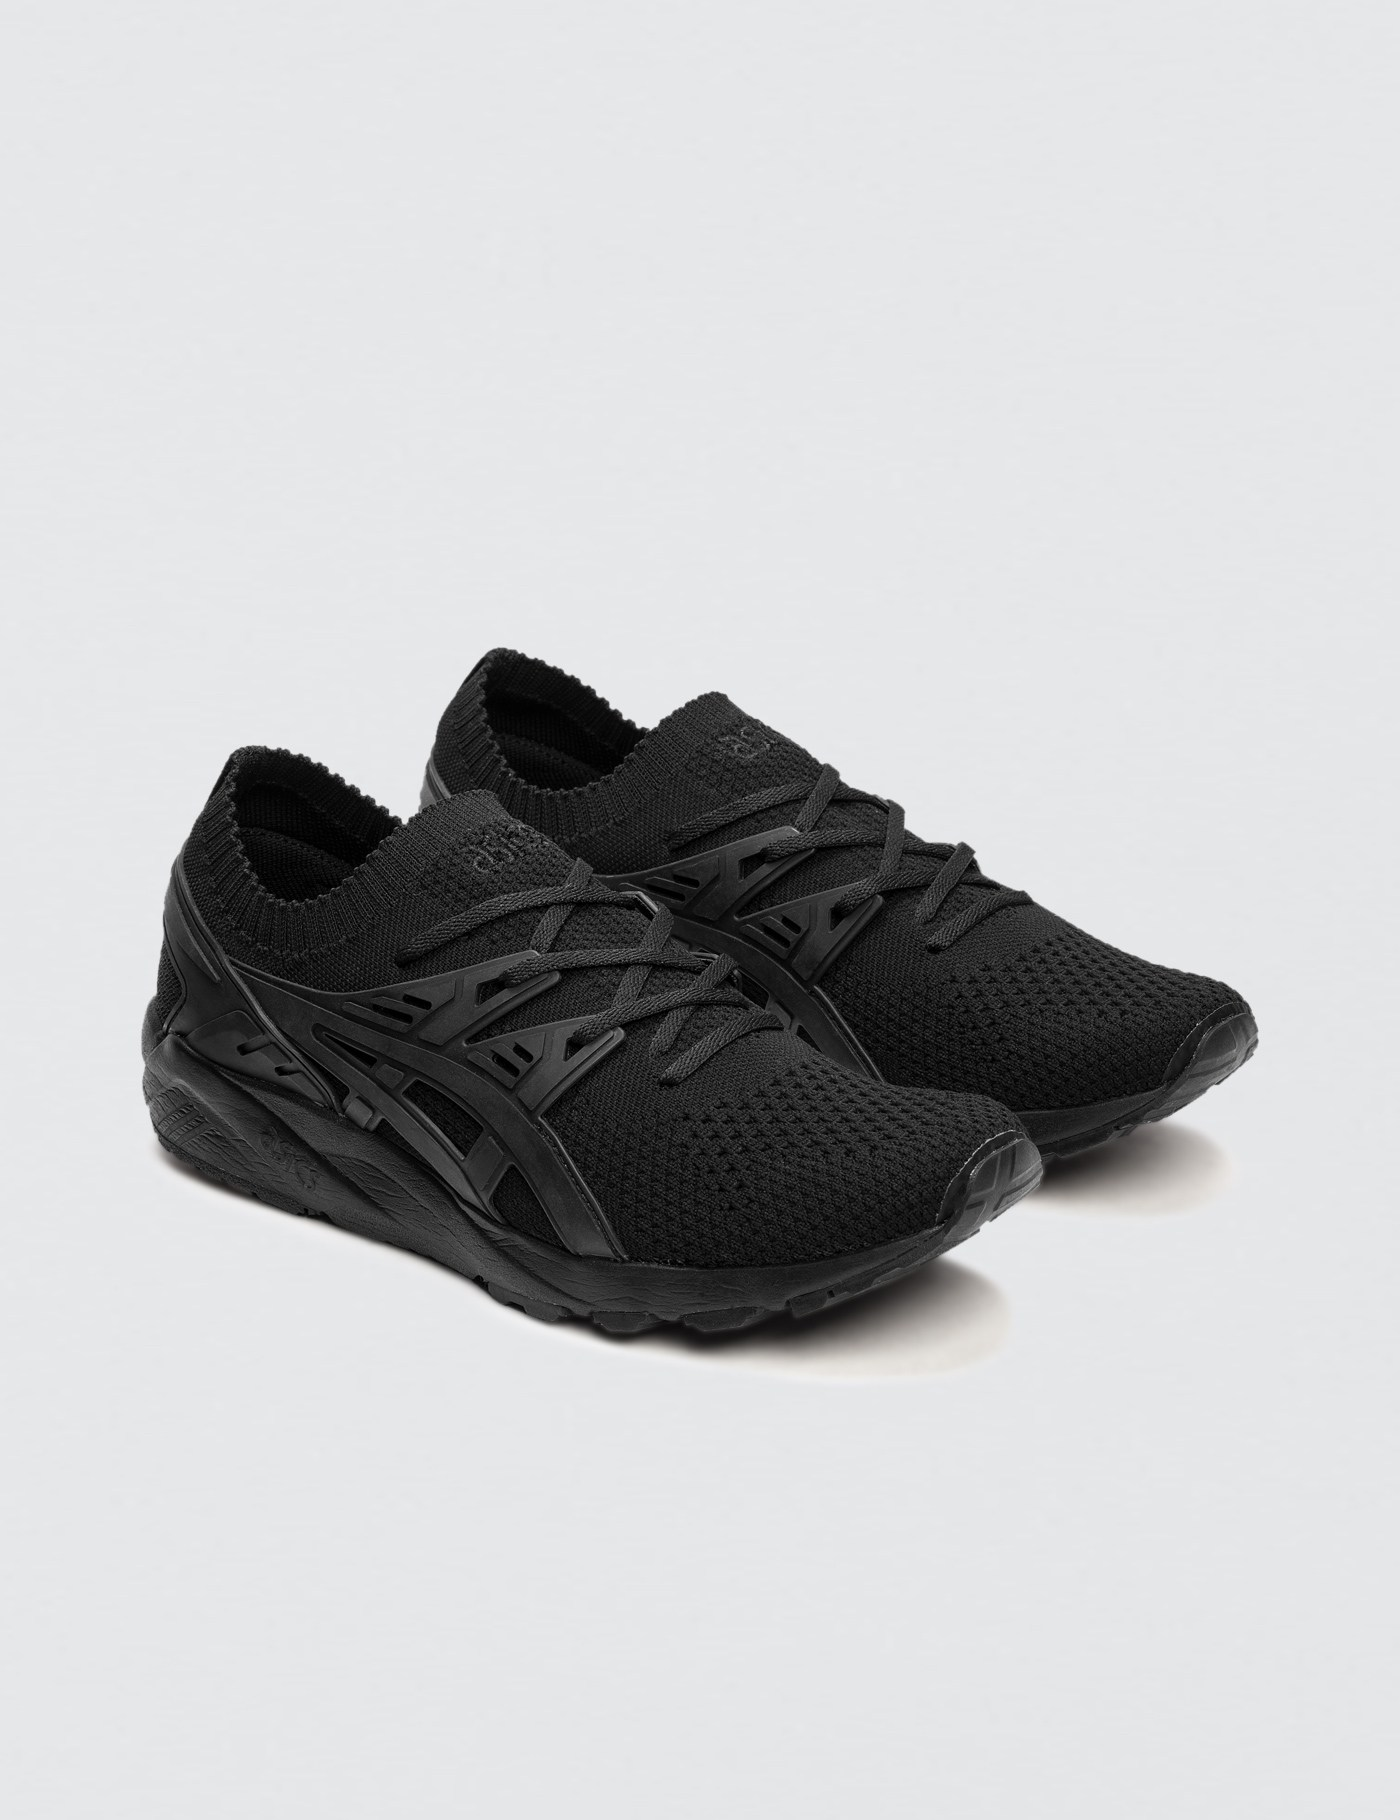 the latest 805d9 95246 Gel-Kayano Trainer Knit, ASICS